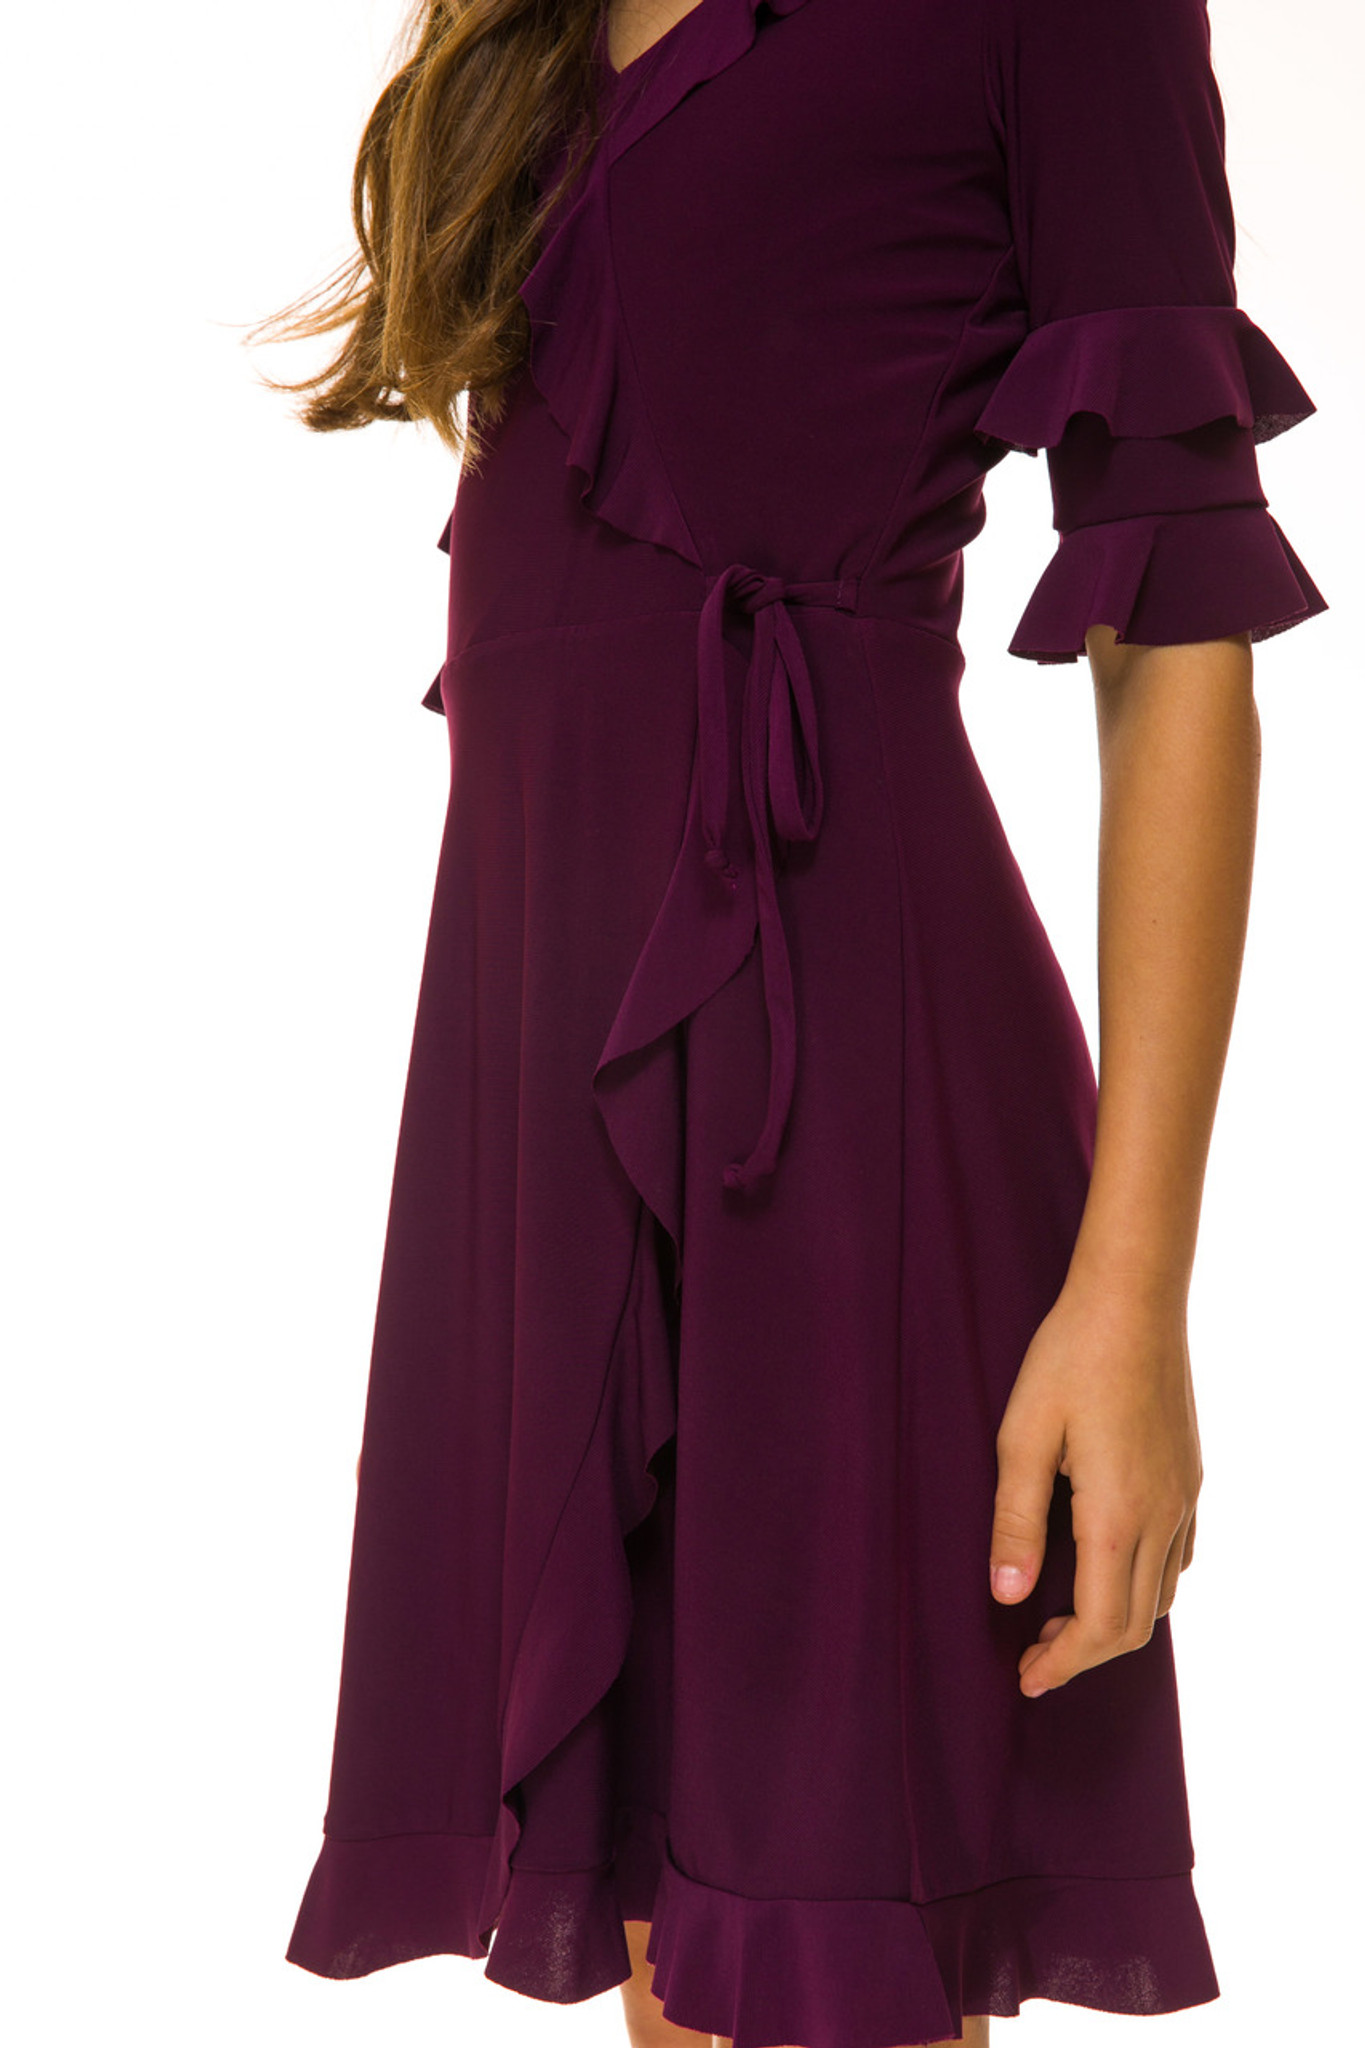 Plum Wrap Dress in Longer Length